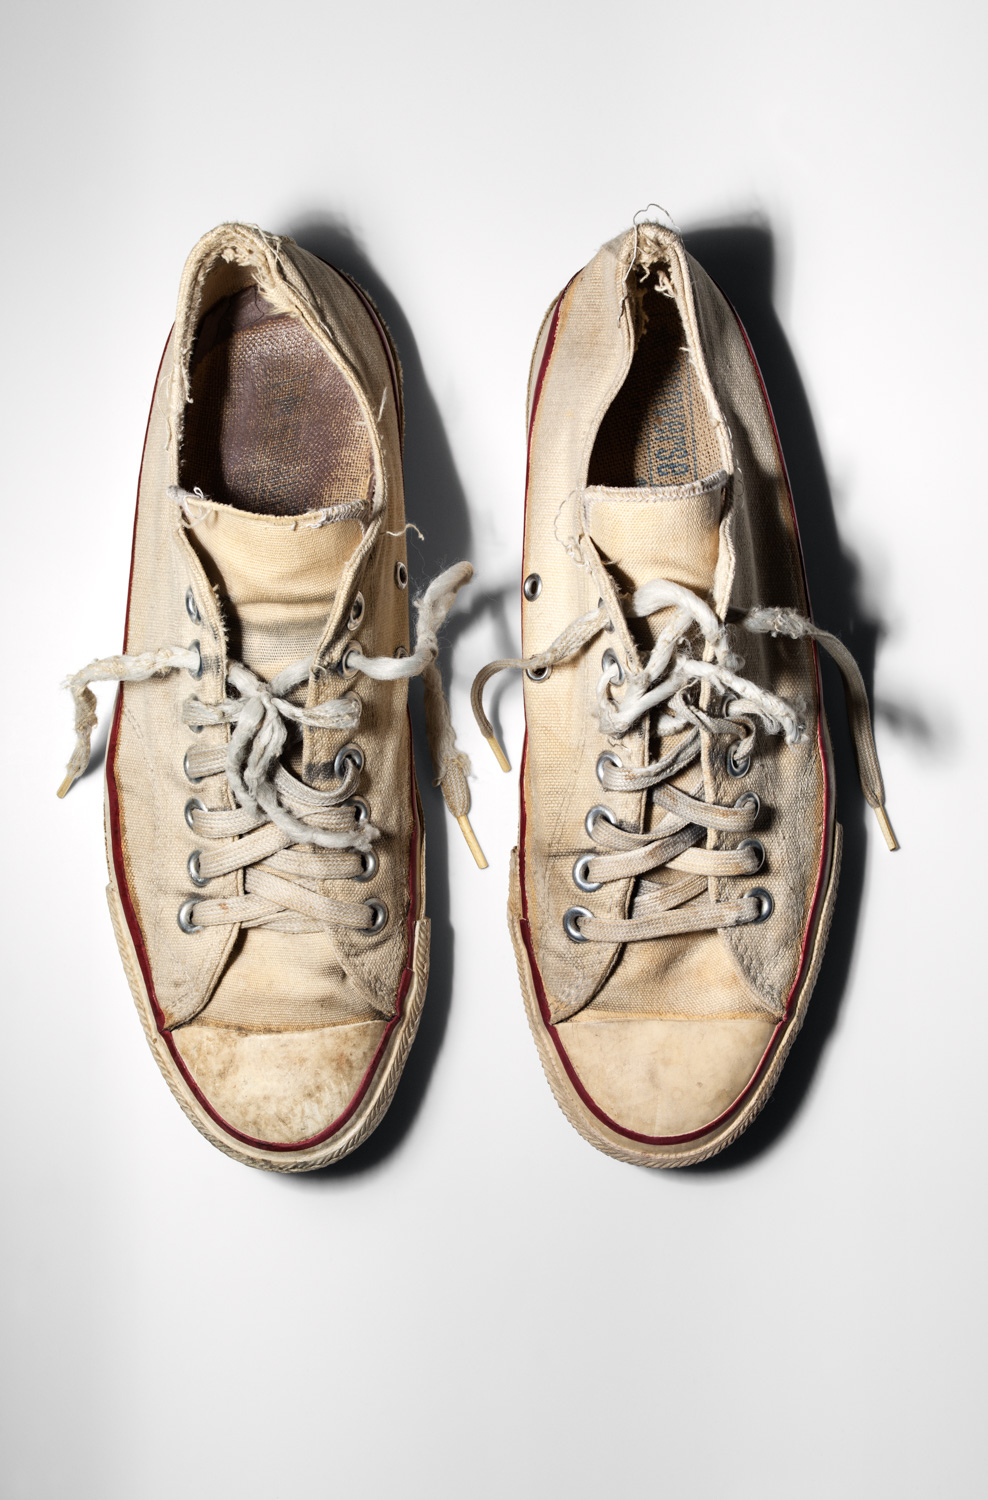 Gene Kelly's Converse Chuck Taylor All Star sneakers.